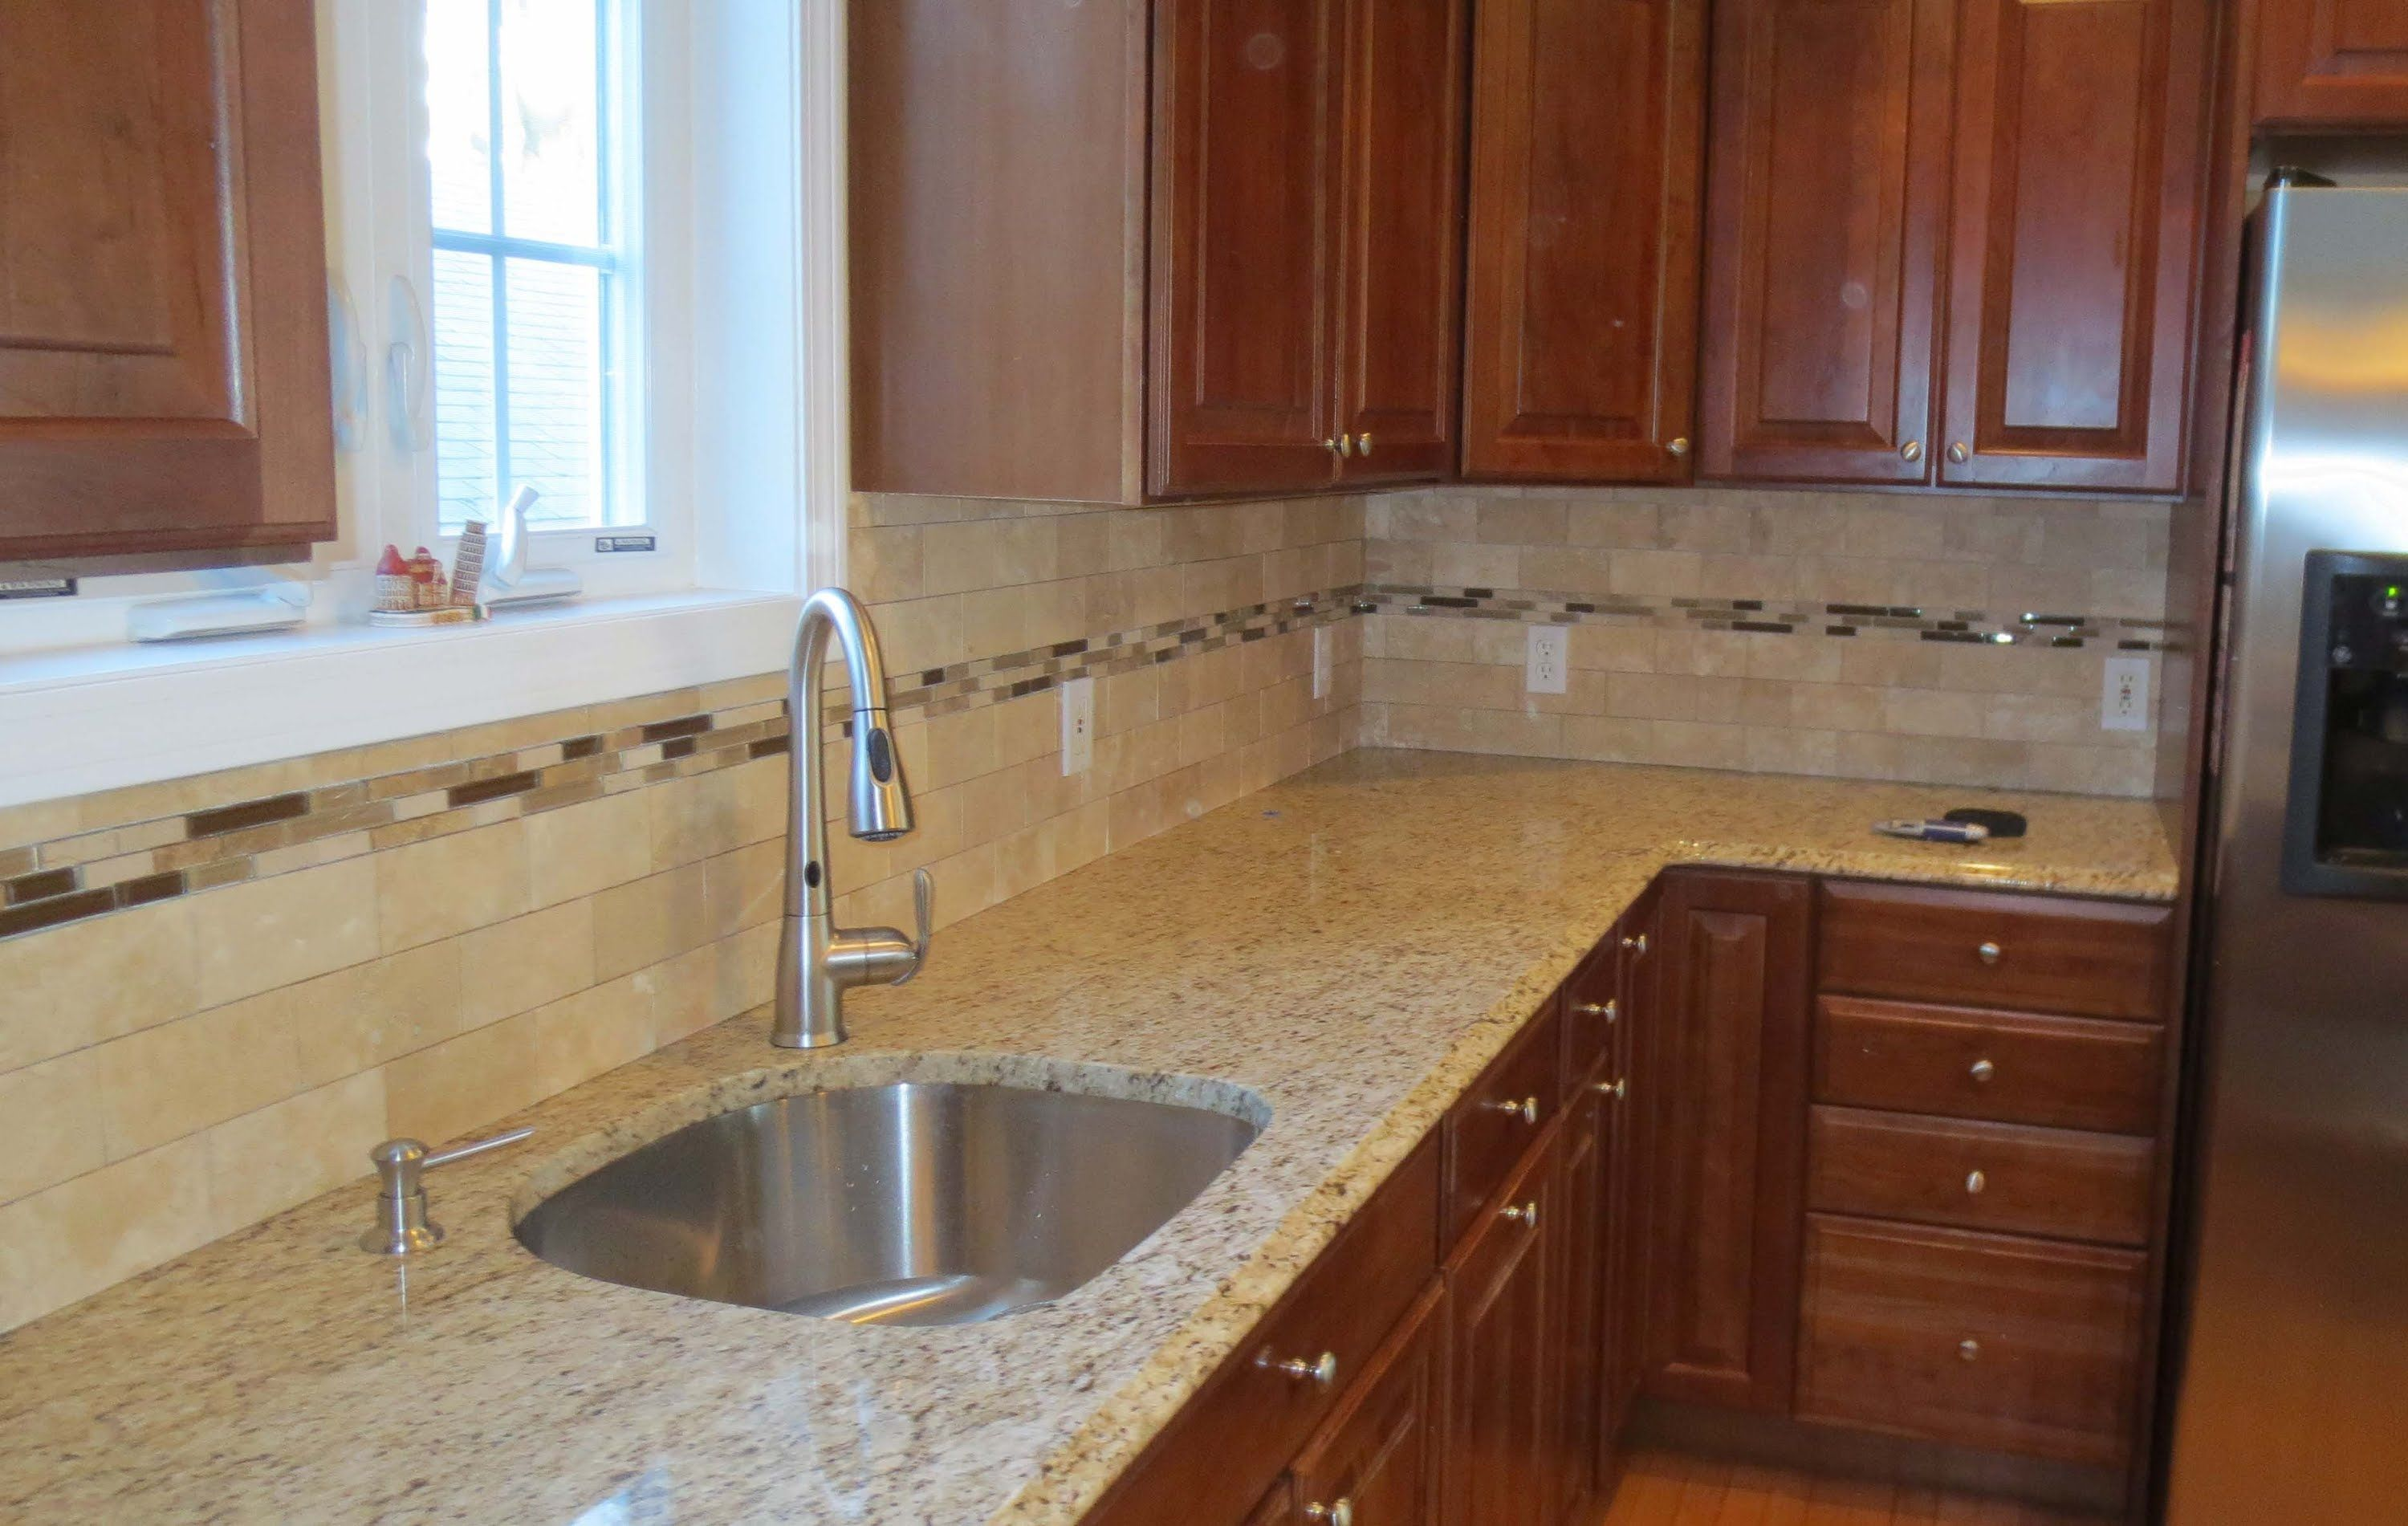 Travertine Subway Tile Kitchen Backsplash With A Glass